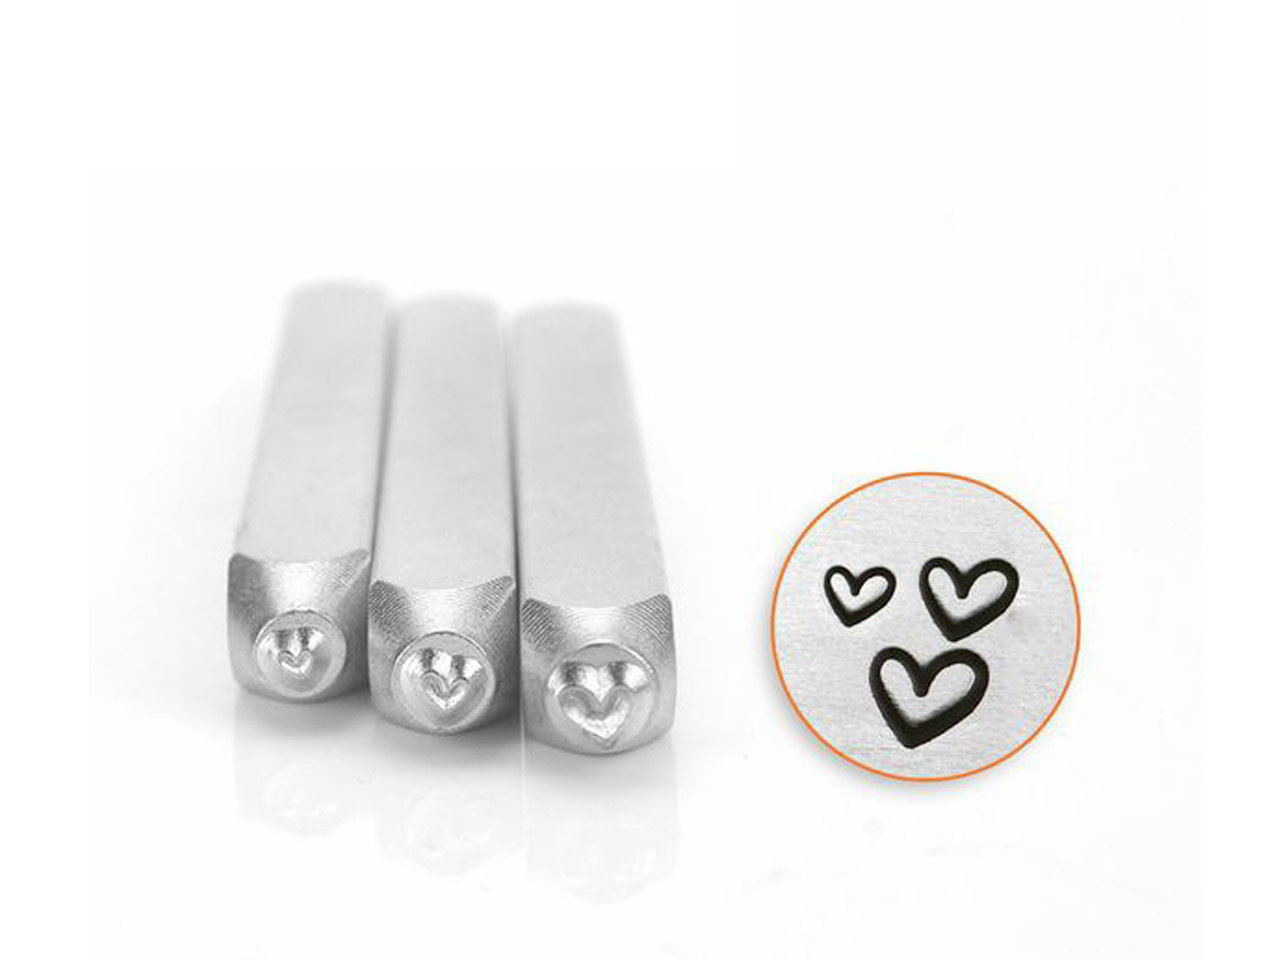 Impressart Love Hearts Stamp Set   Pack of 3 1.5mm, 2mm, 3mm